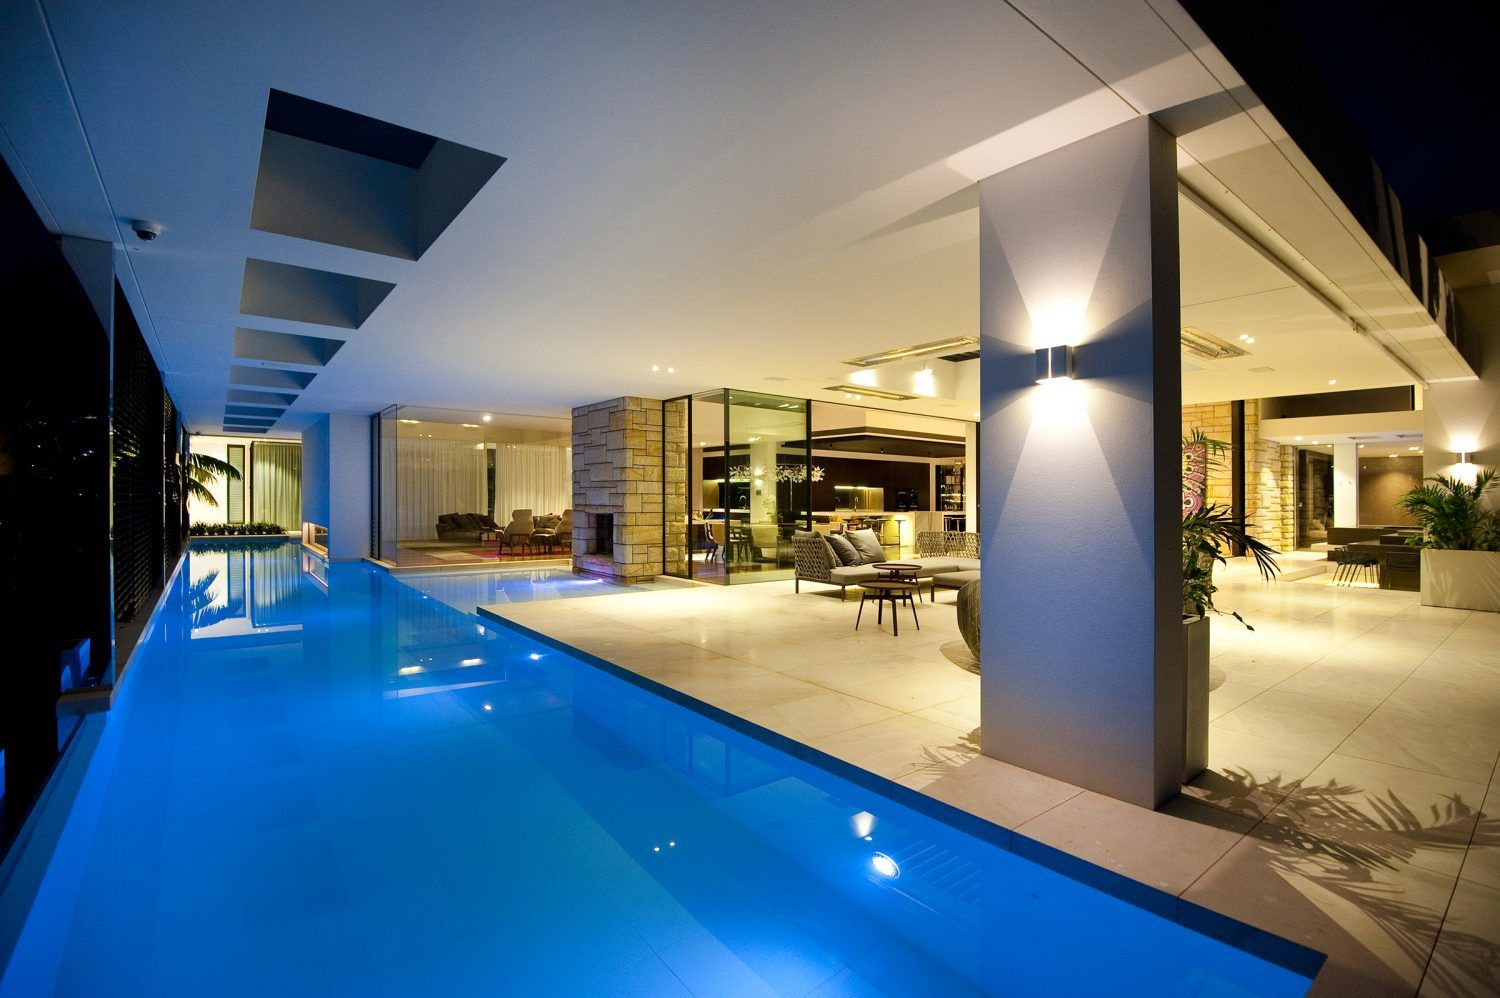 luxurious refreshing living space right next to the stunning olympic size pool which creates a bluish